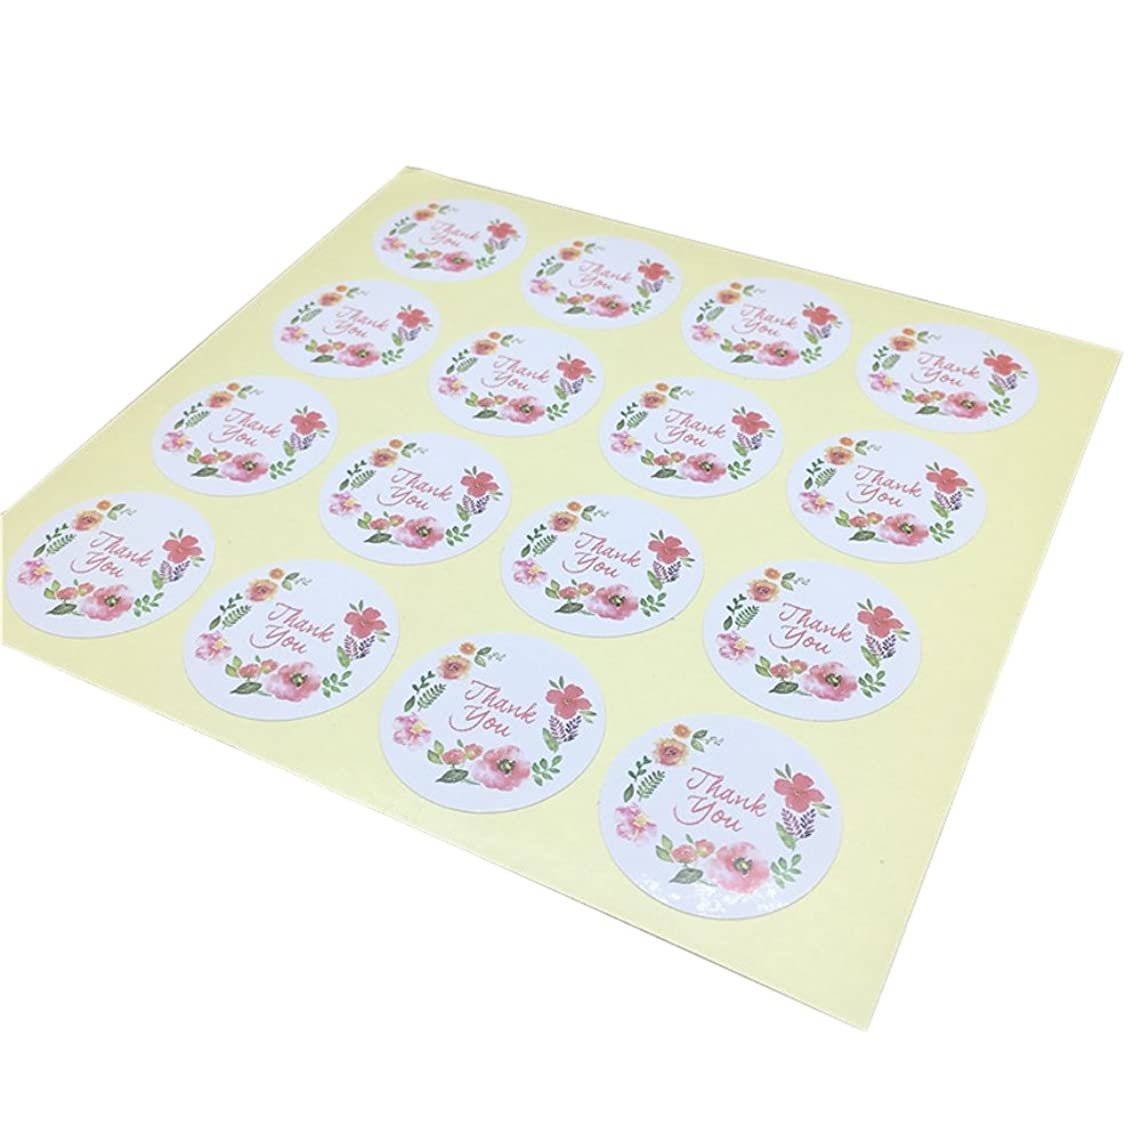 Floral Colorful 10 Sheets(160 pcs) thank you Stickers 3.5X3.5cm DIY Cookie Candy Gift Packaging Label Stickers Craft Wedding Party Adhesive Paper Seals